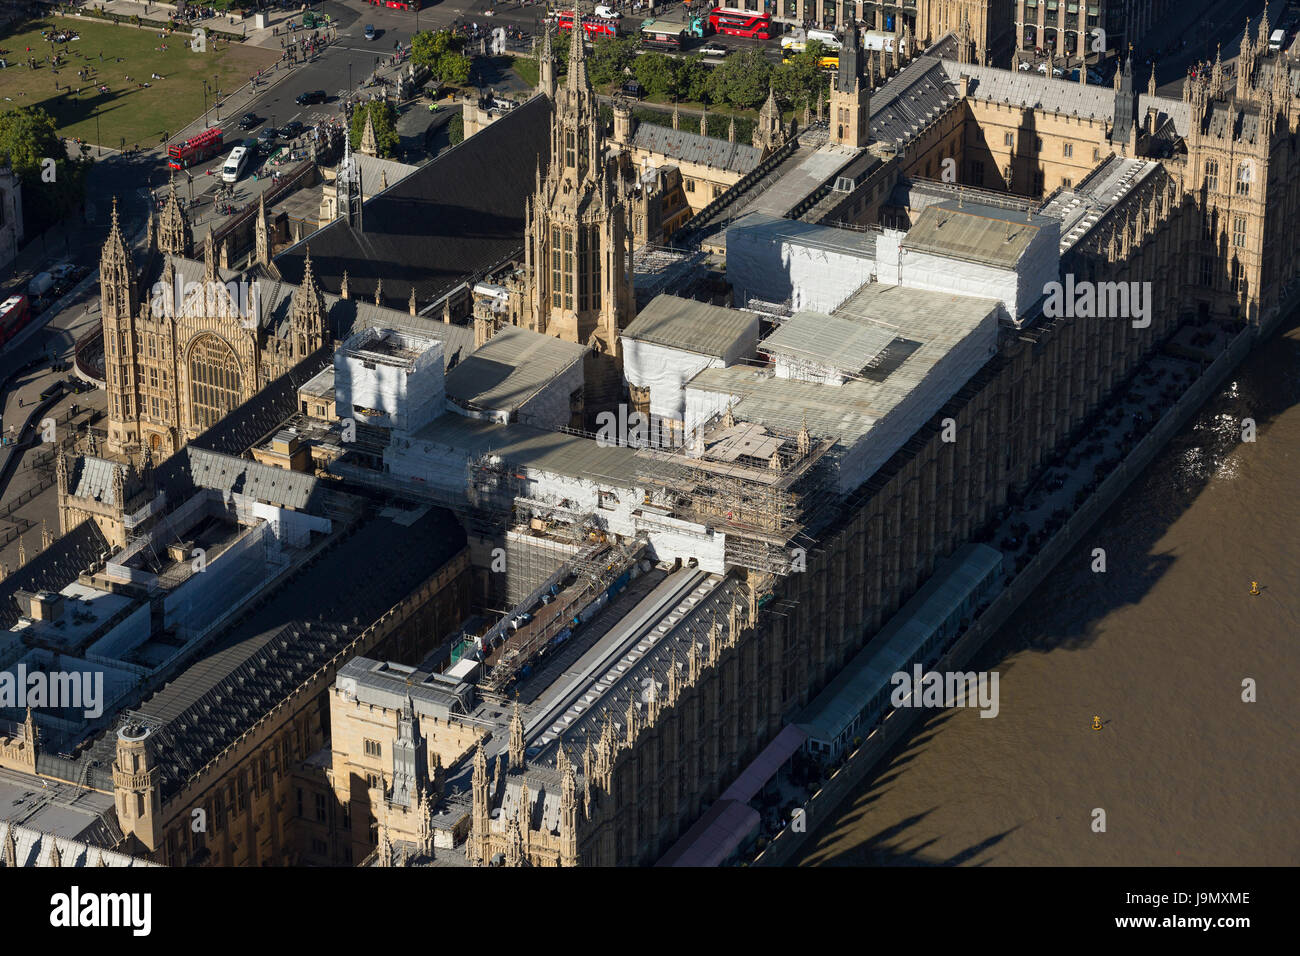 Aerial view of The Palace of Westminster currently covered in scaffolding undergoing repairs. Commonly known as Stock Photo